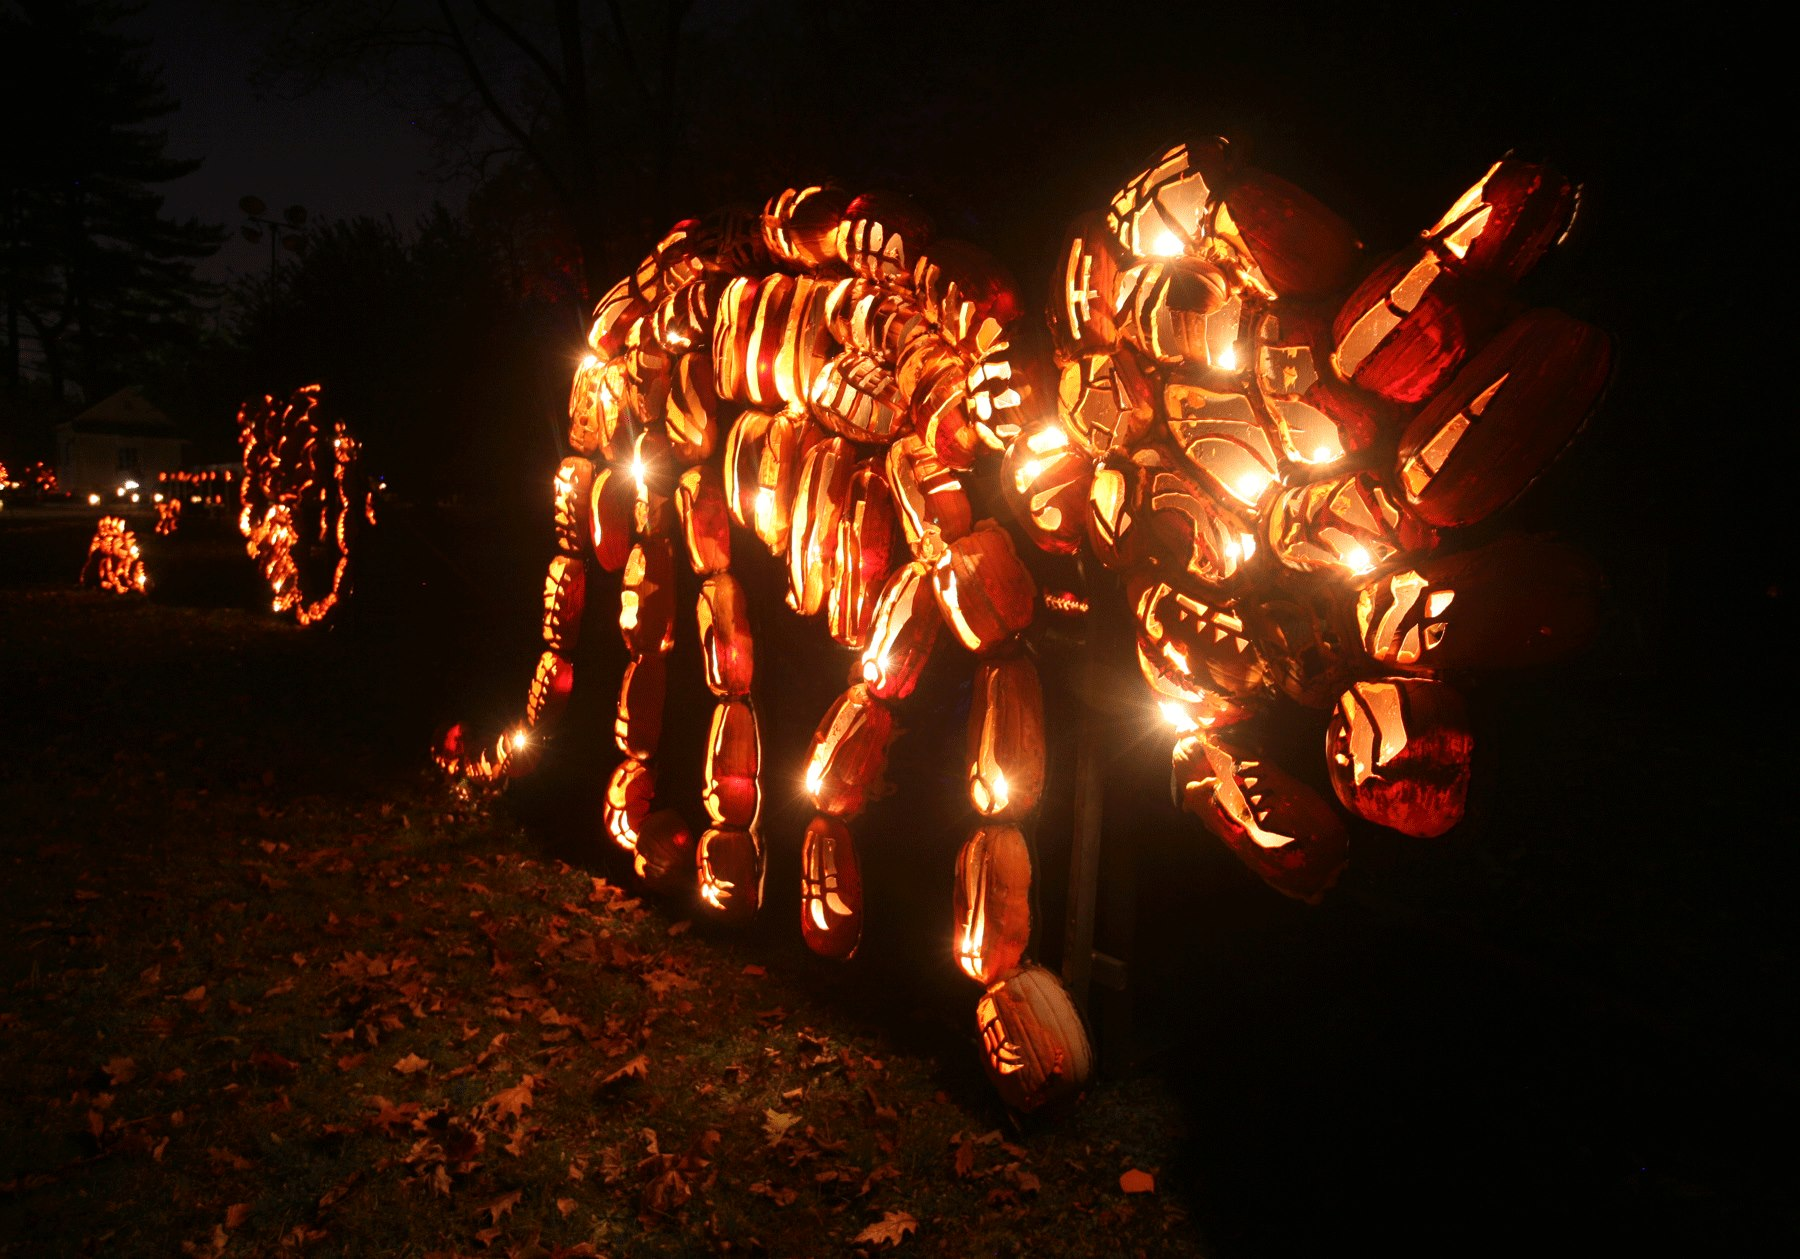 The Best of New York's Great Jack O'Lantern Blaze: 475268_10151032234990168_2135996486_o.jpg